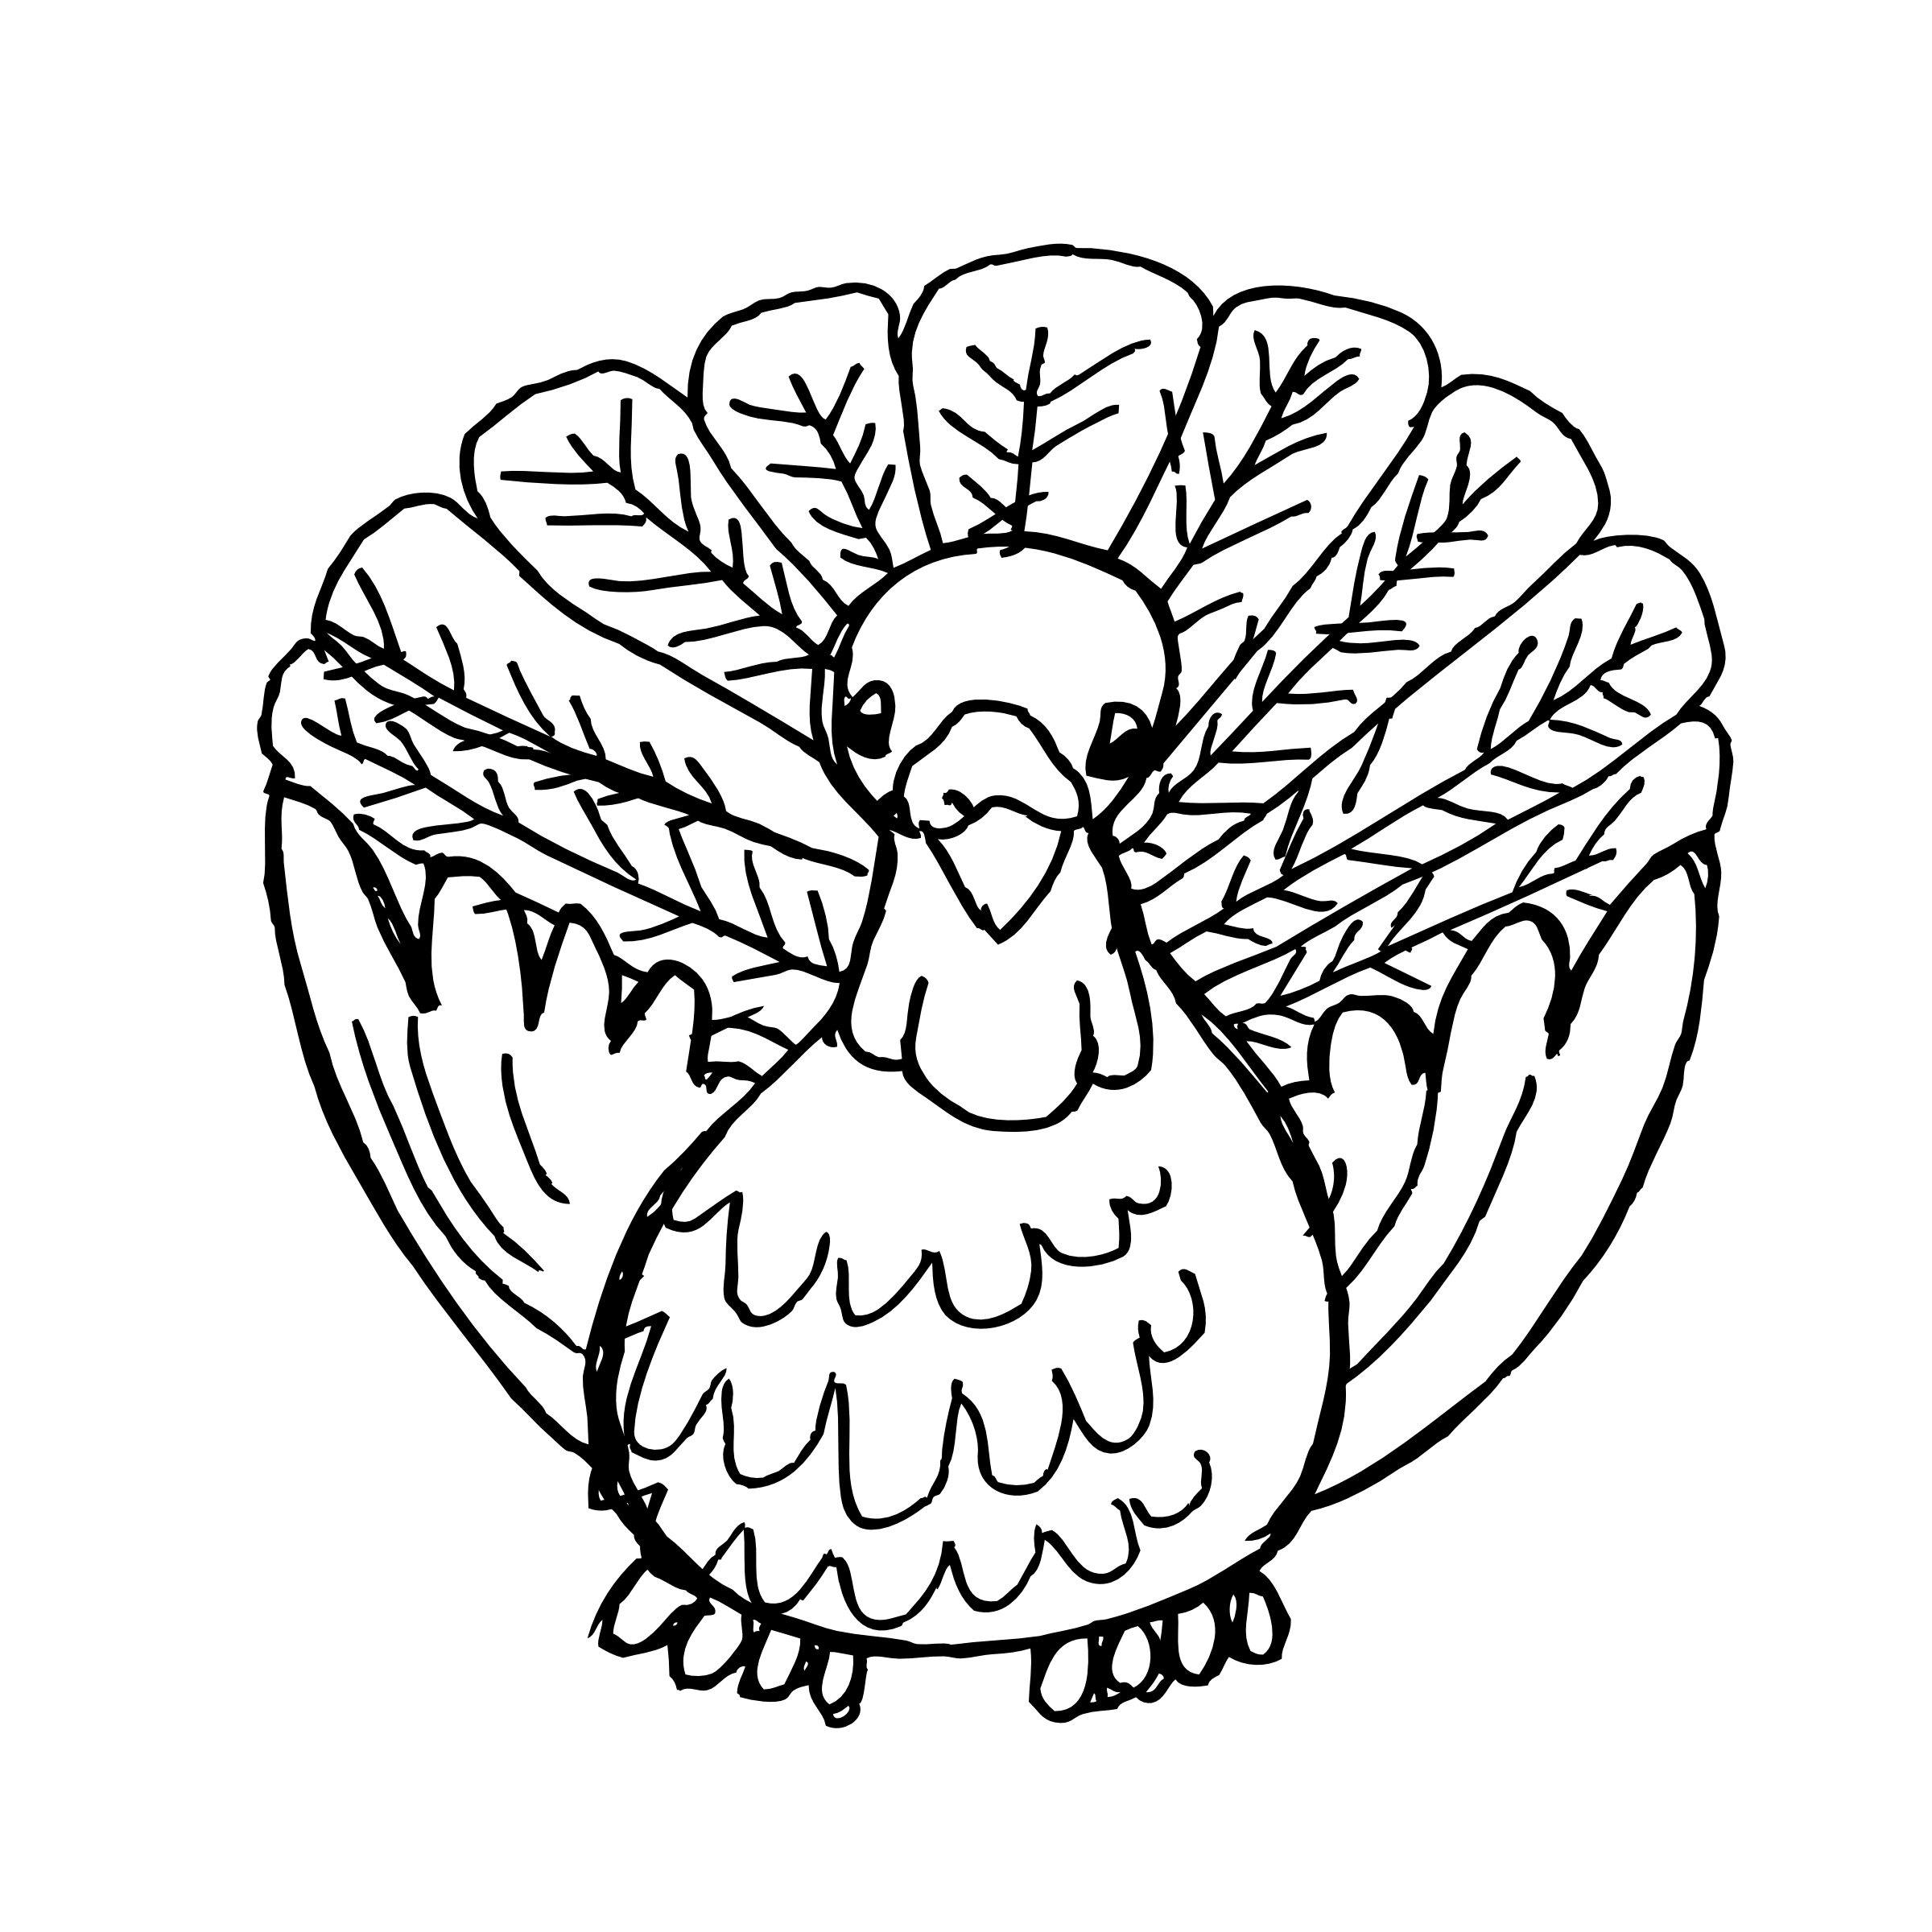 Clipart black and white turkey image library download Turkey Feather Clipart Black And White | Clipart Panda - Free ... image library download